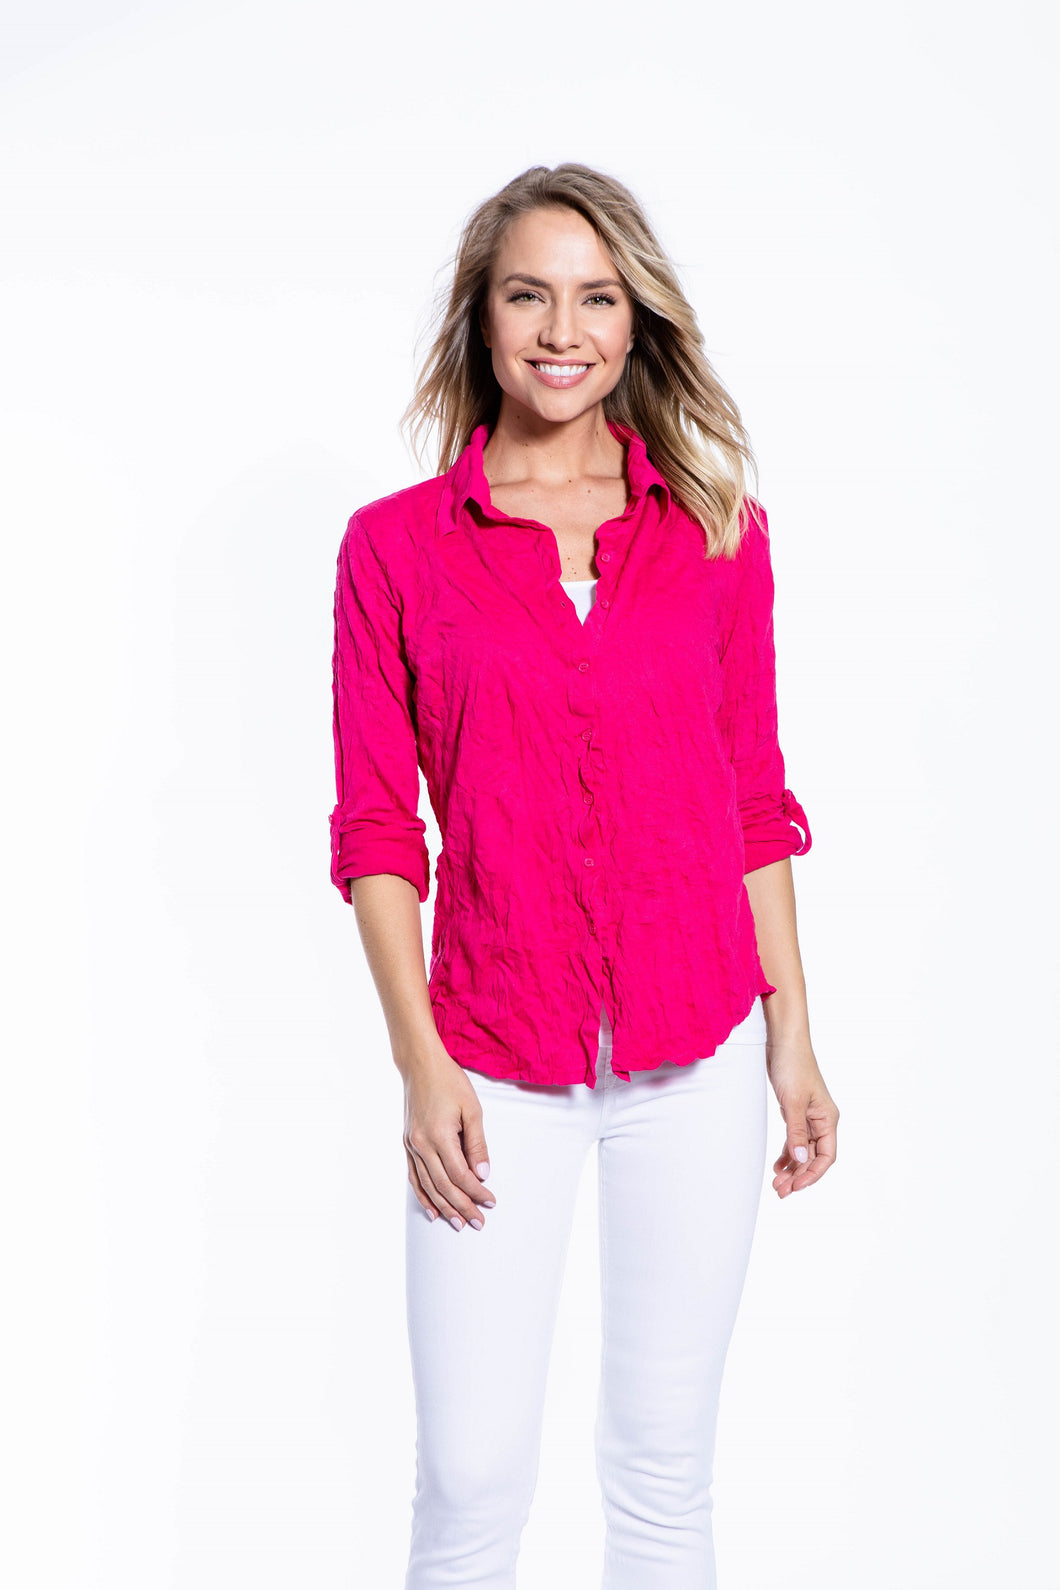 Crinkle Knit Women's Fashion Blouse with Rollup Sleeves - Hot Pink